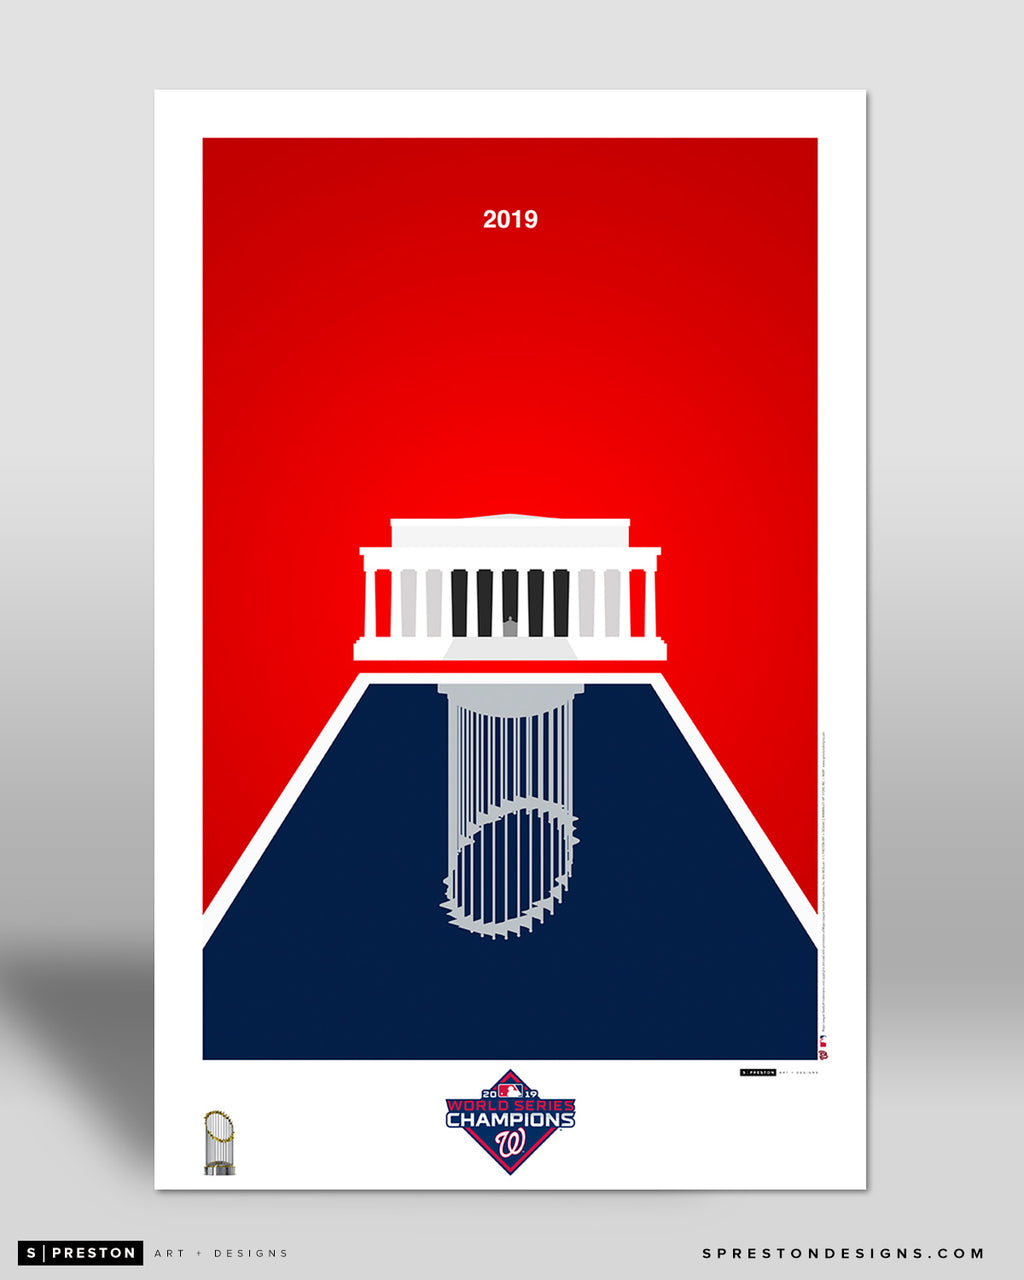 Minimalist World Series 2019 Poster Print - CLEARANCE